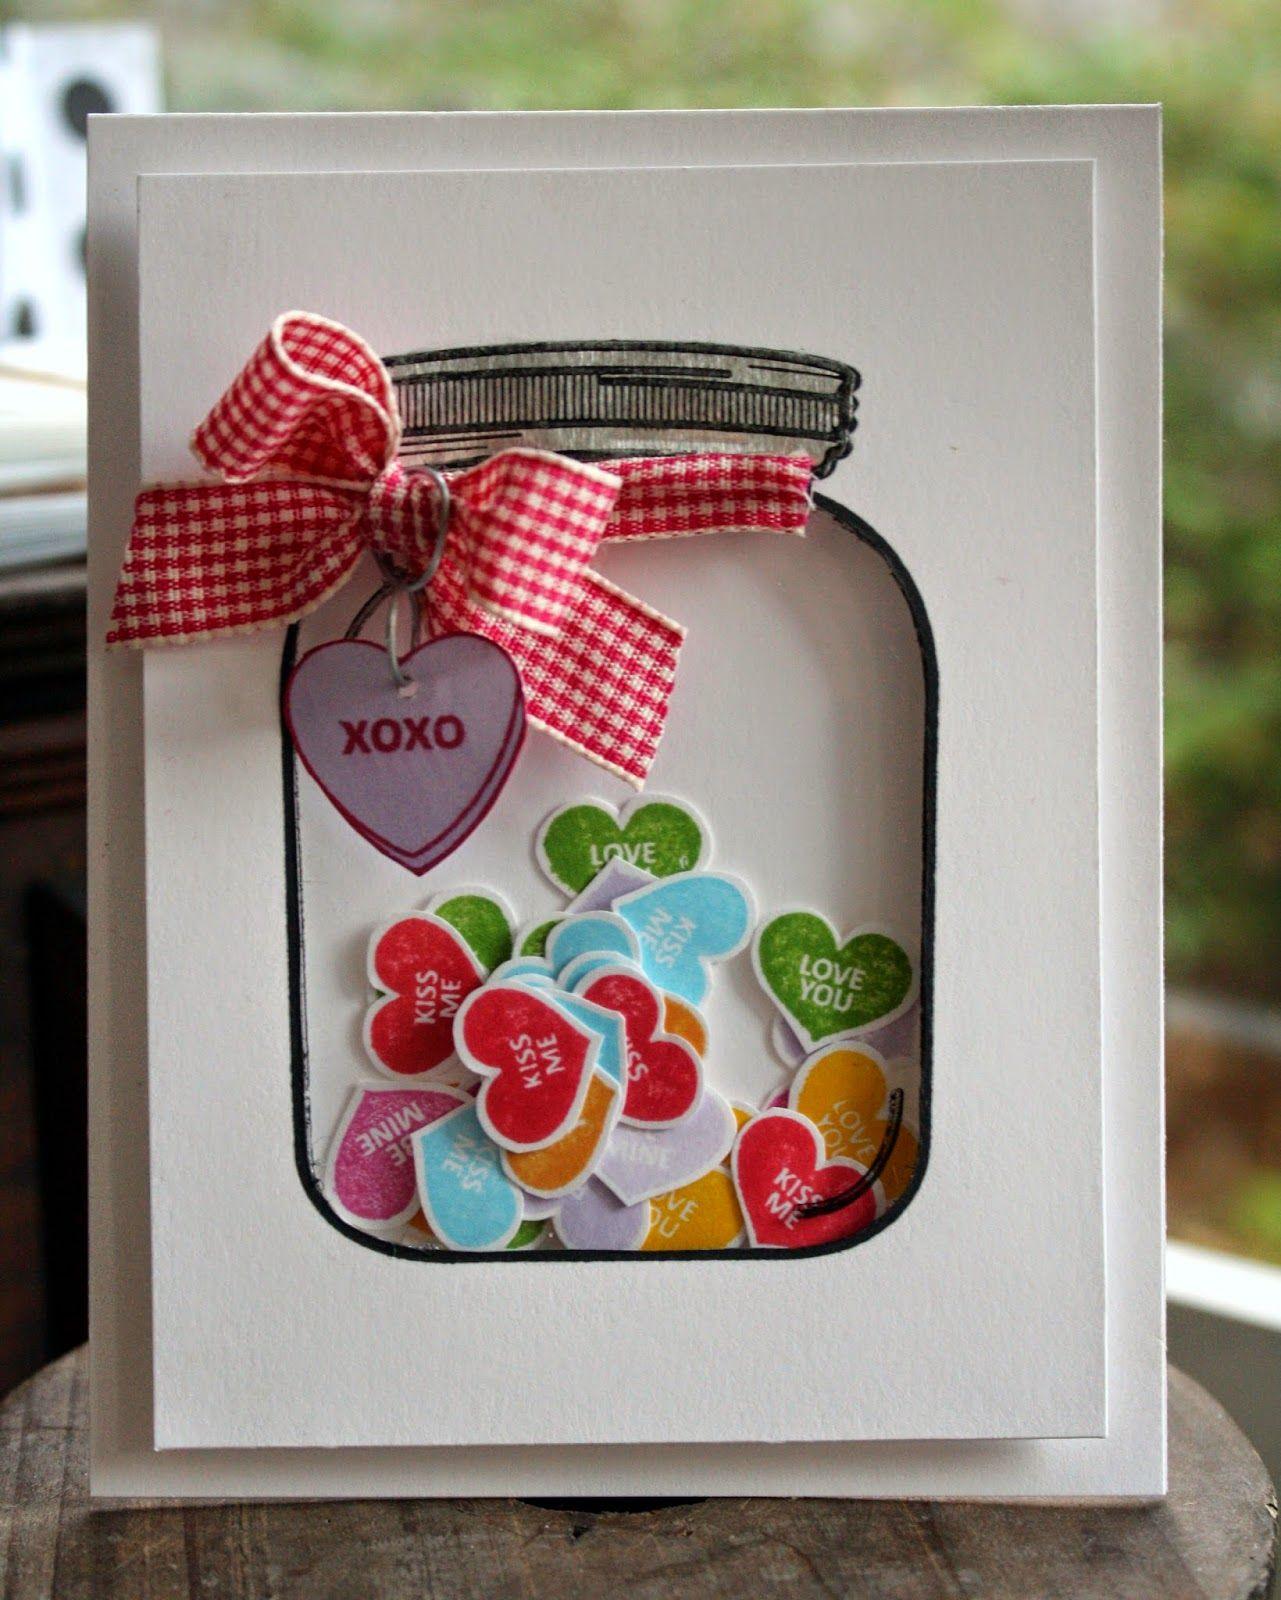 Shaker cards arent shaker cards fun they are too hard to make made to create candy hearts shaker card kristyandbryce Choice Image